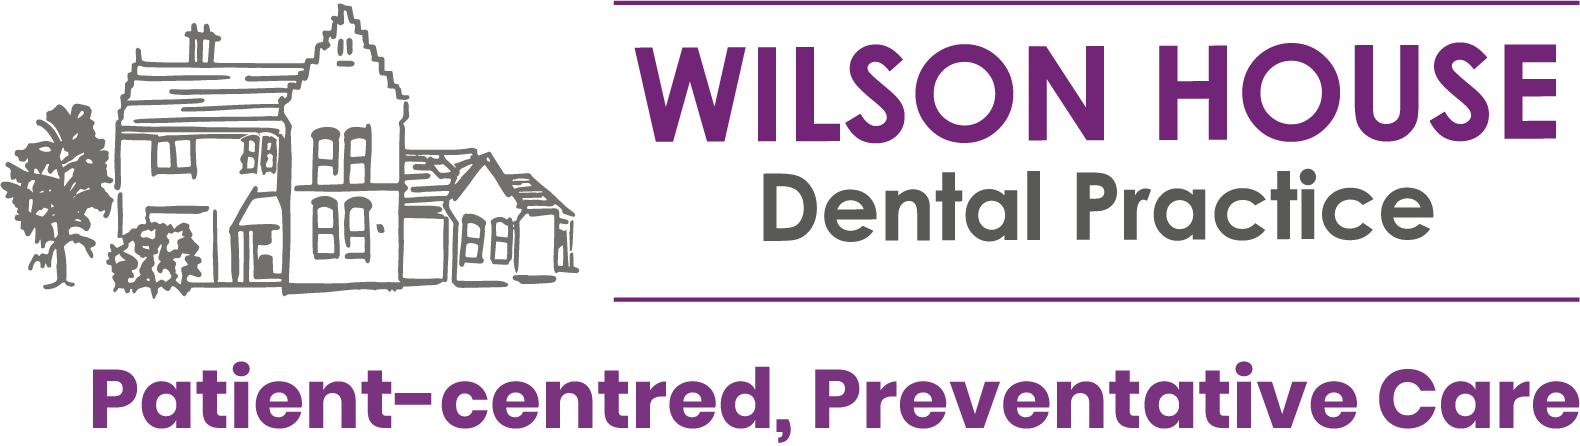 wilson house dental practice logo